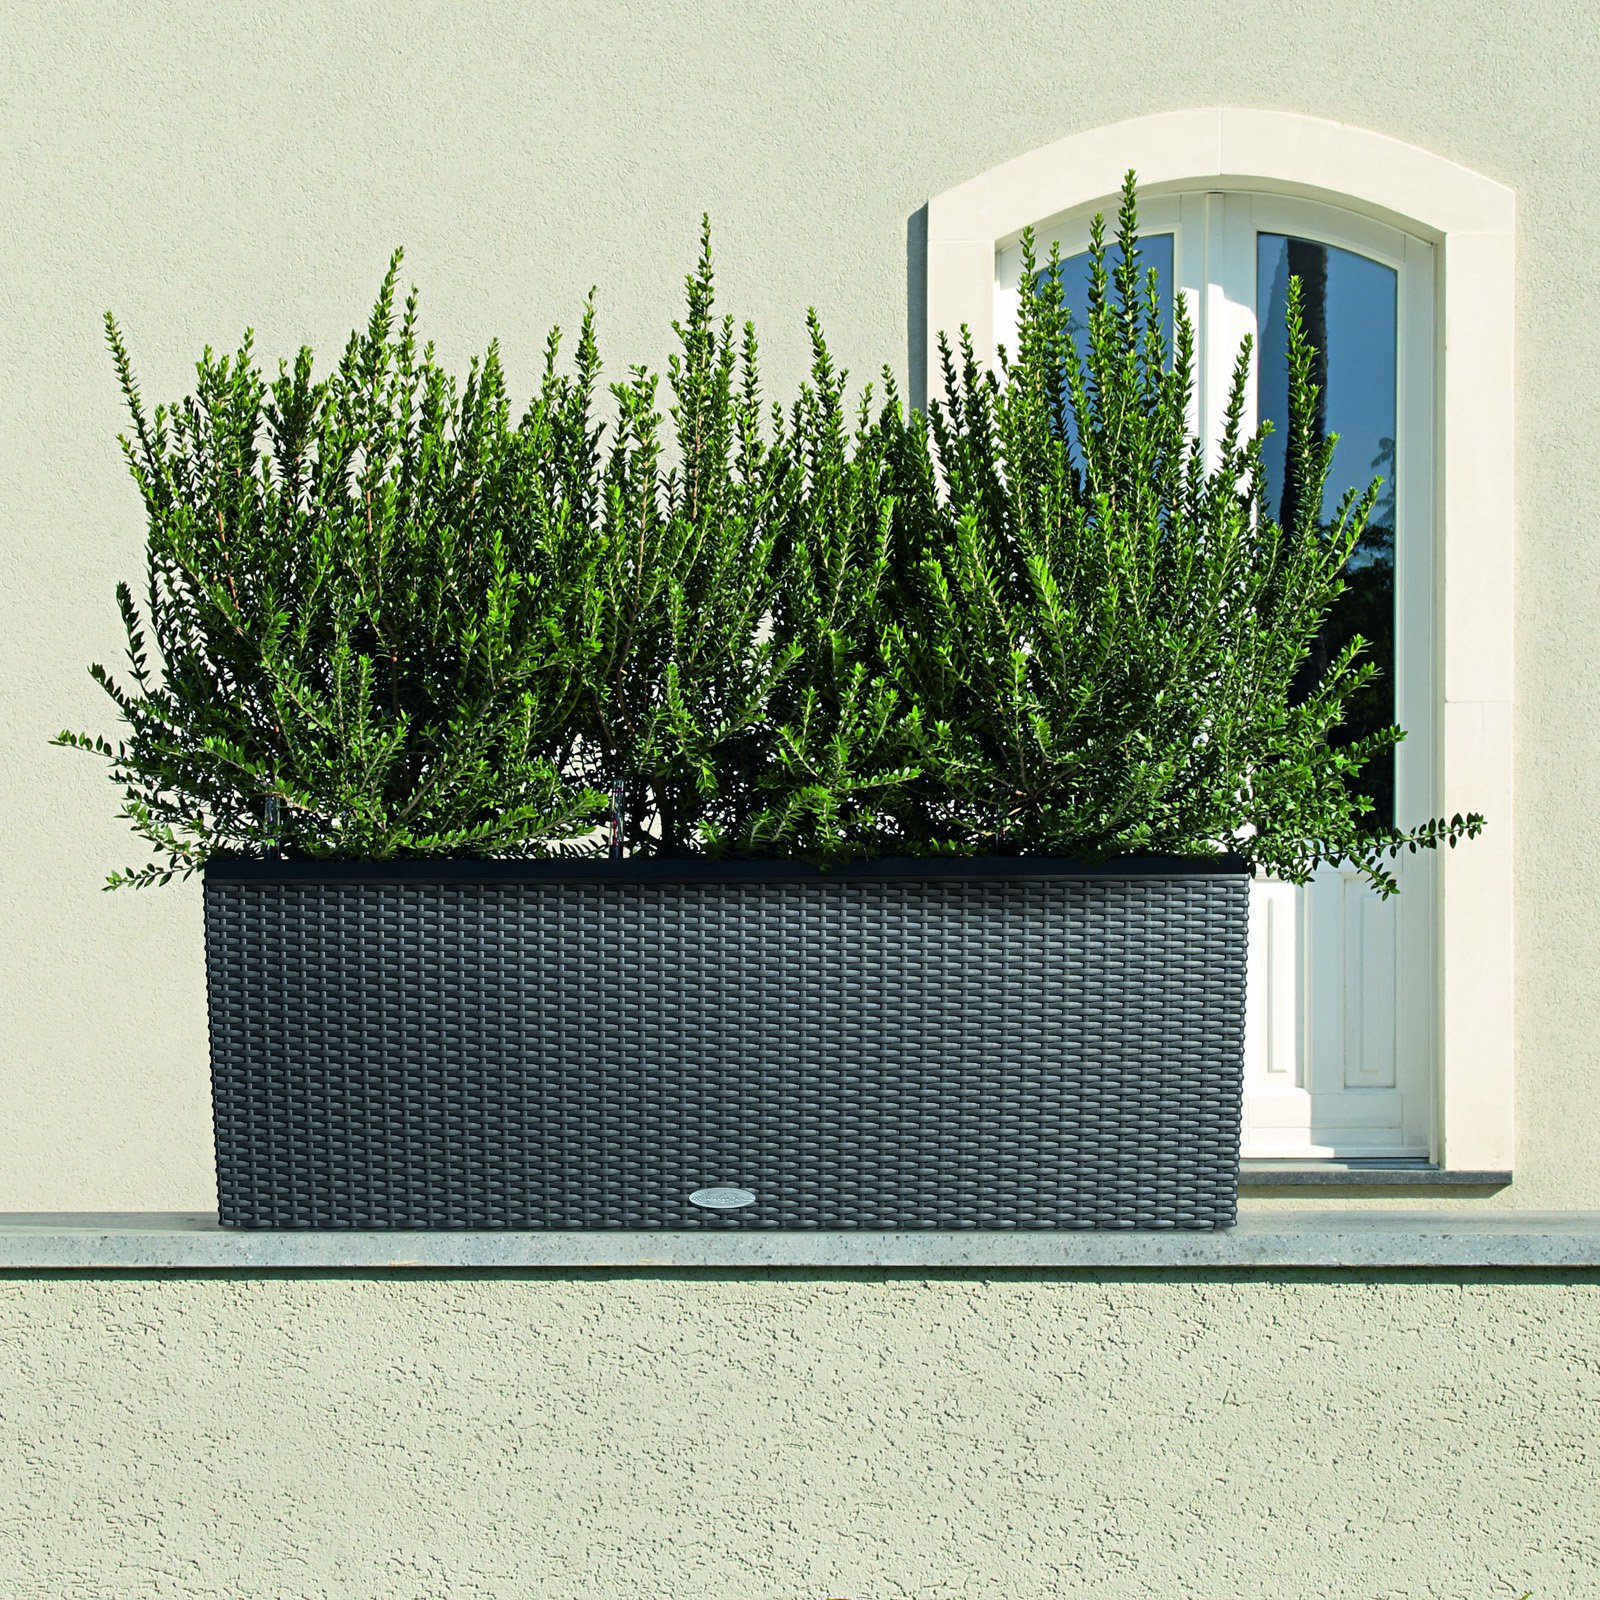 Rectangle Lechuza Trio Cottage 30 Self-Watering Resin Planter